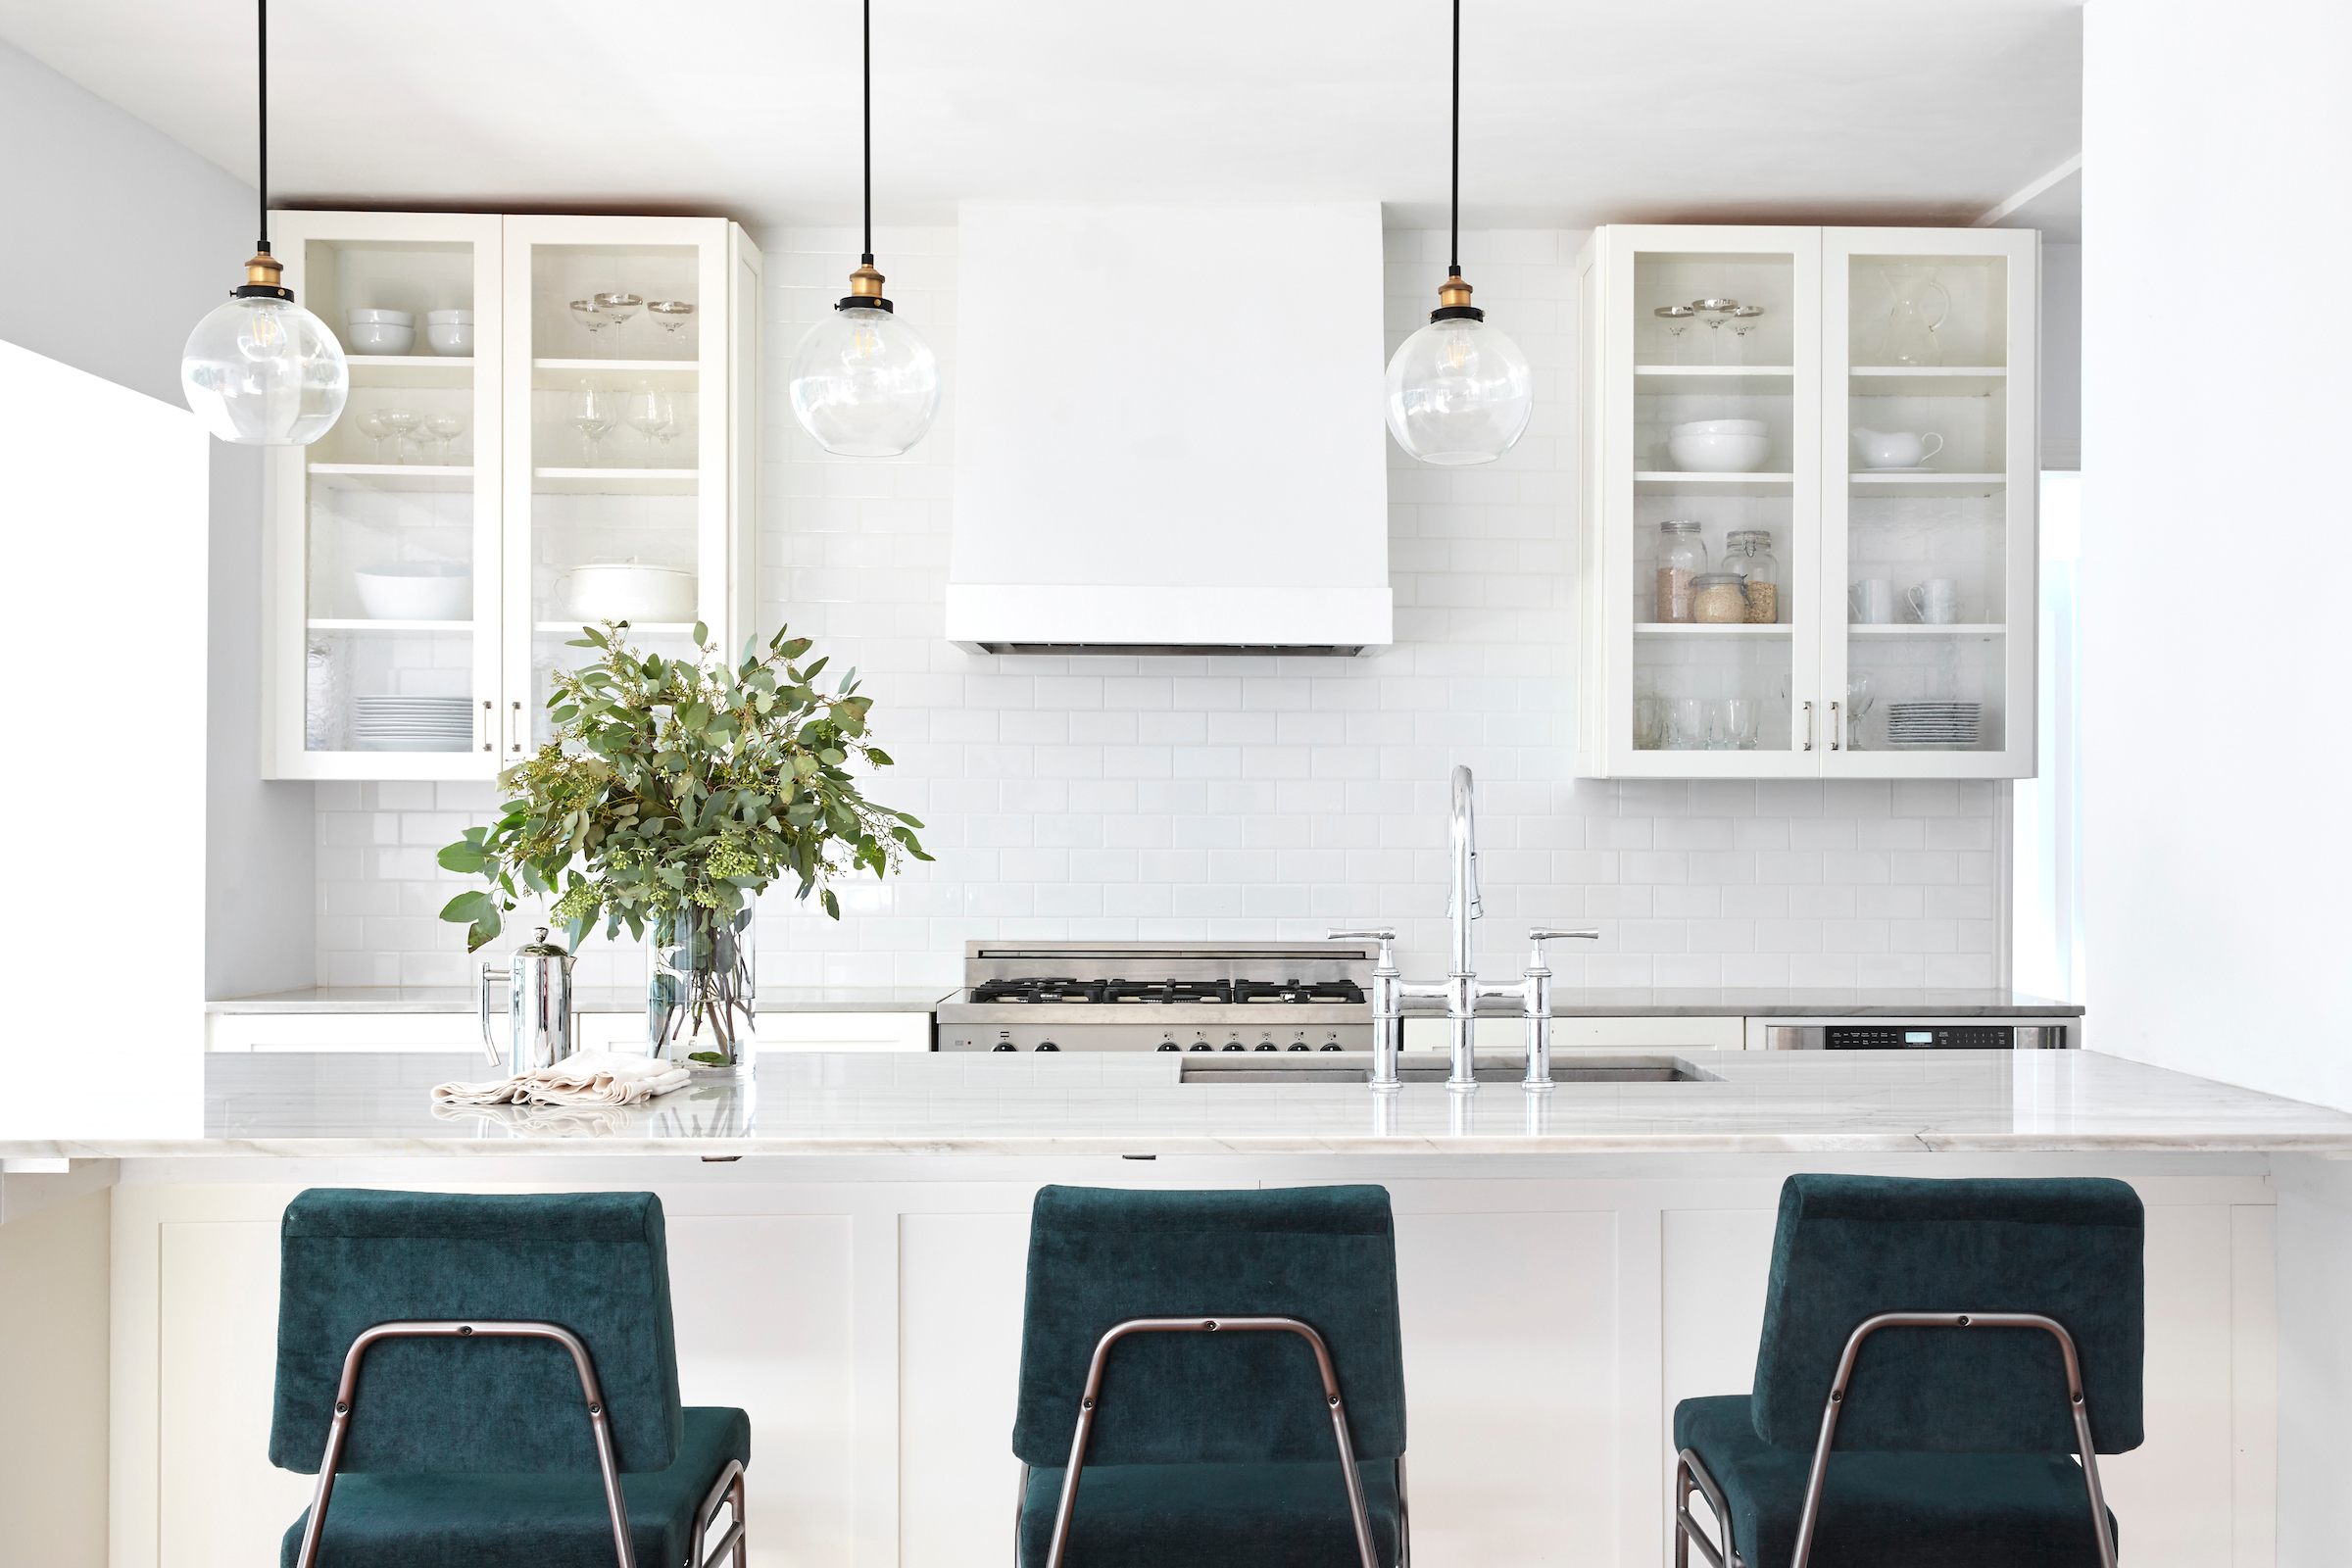 Residential kitchen remodel in the hills of Oakland, California